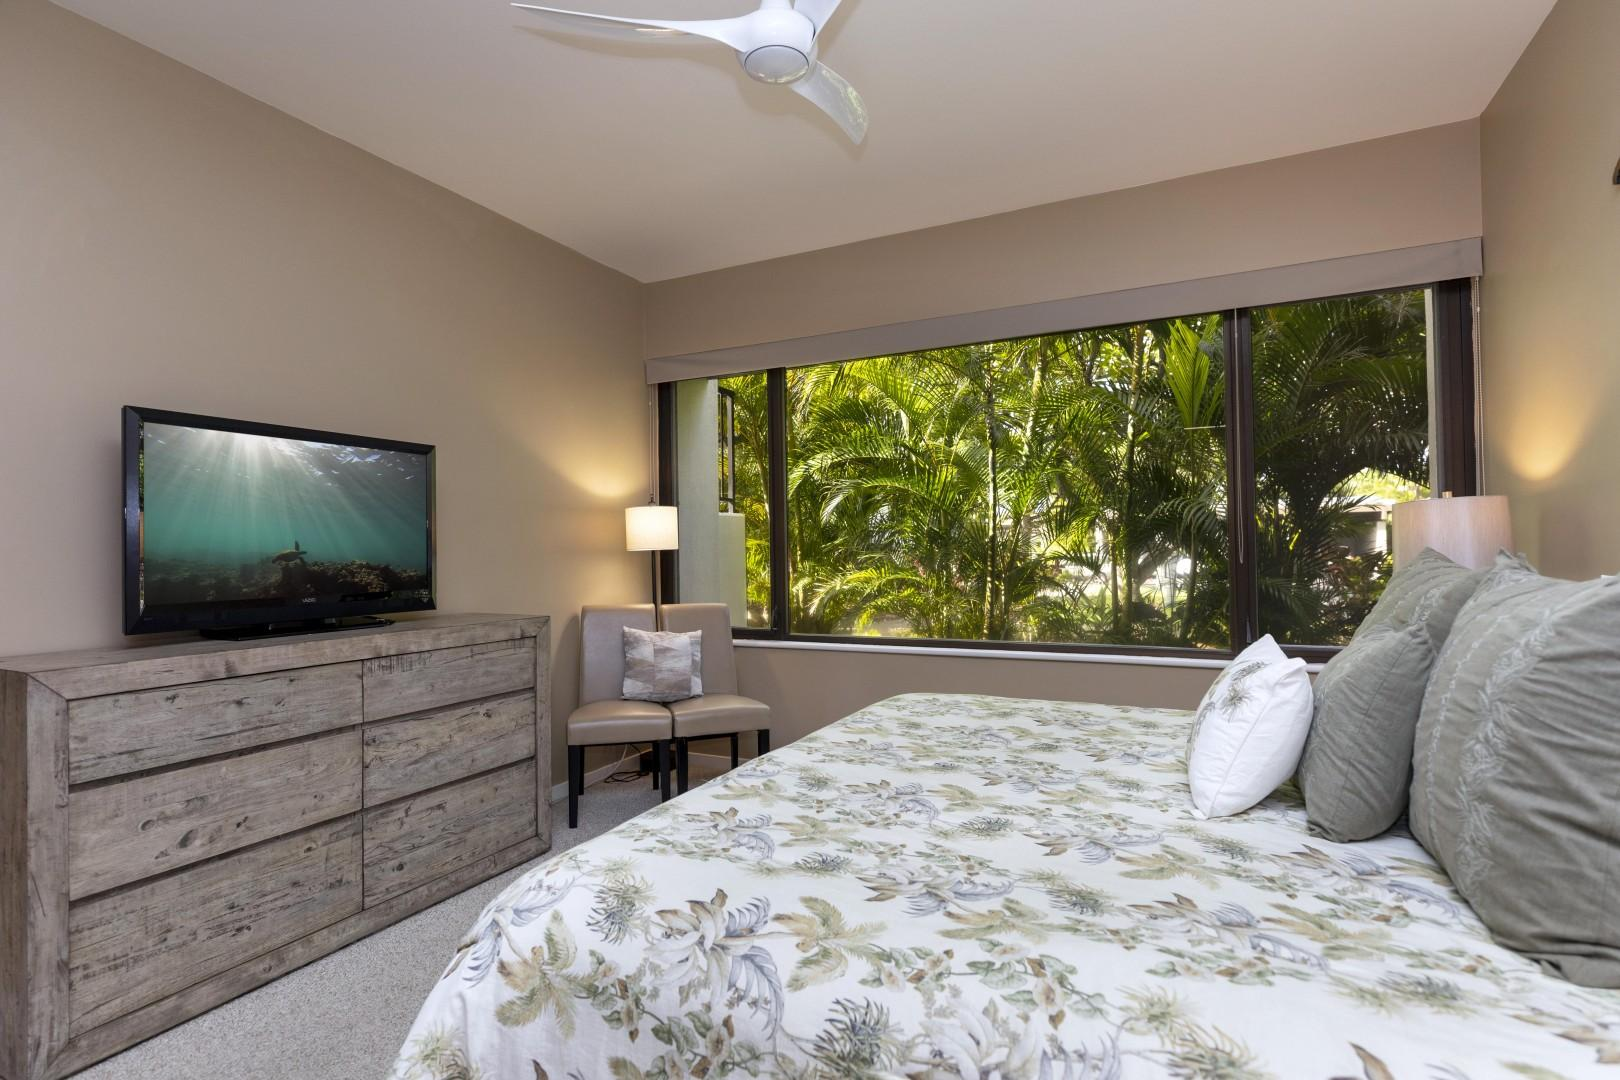 The guest suite has a beautiful and tranquid tropical setting.